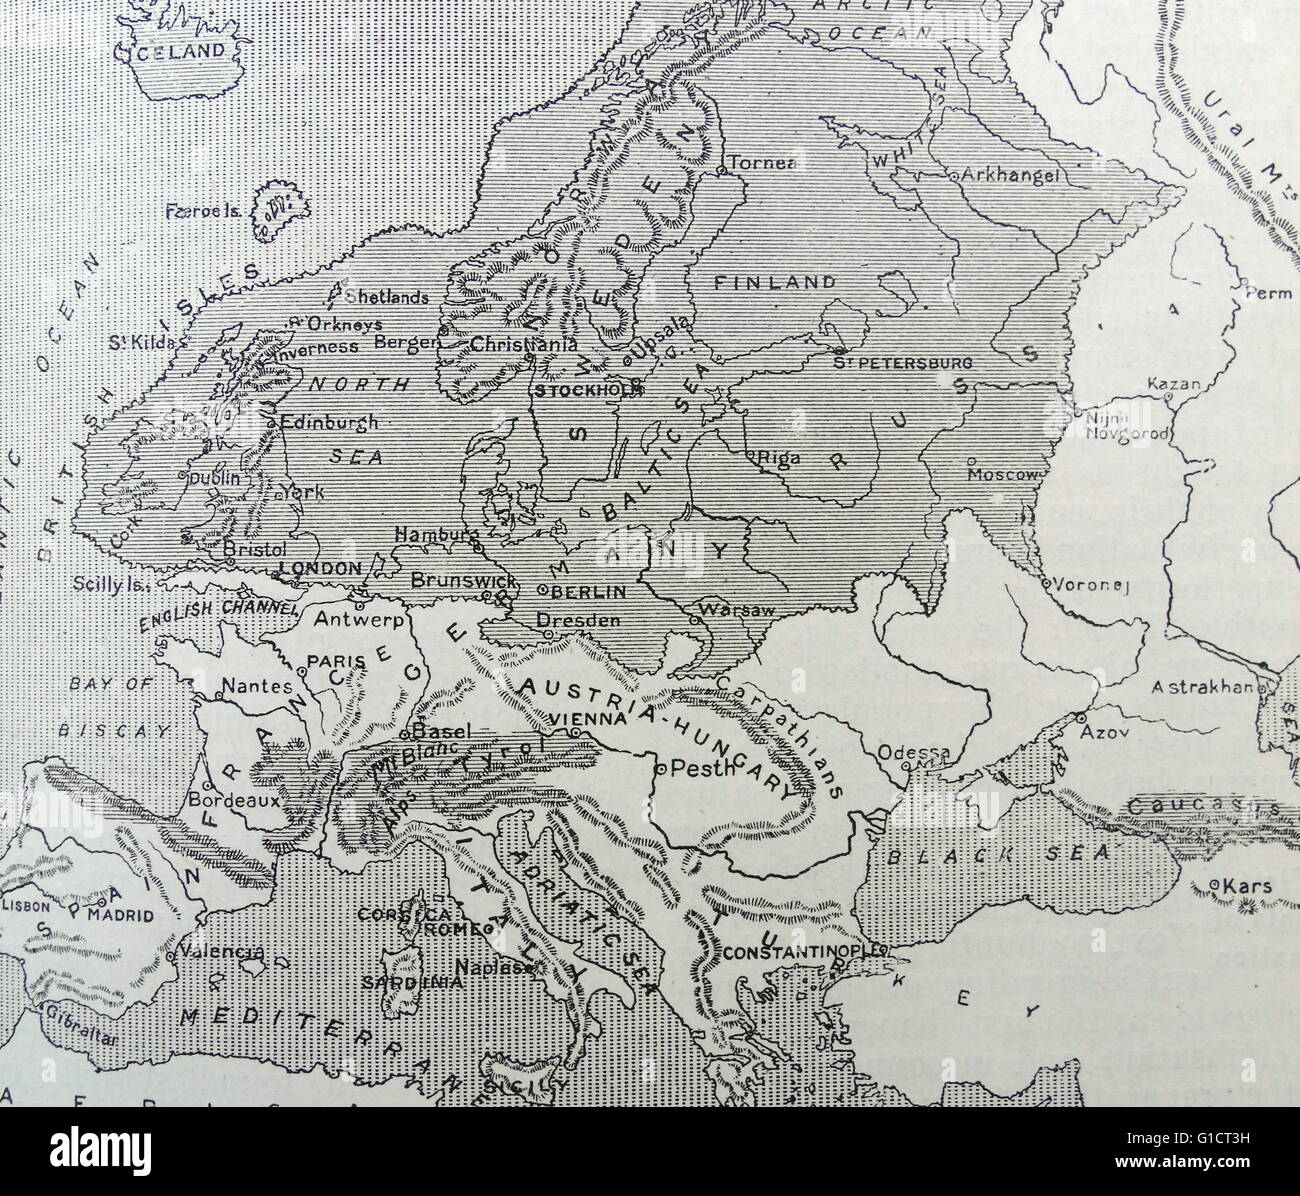 Map Of Europe During The Ice Age Stock Photo 104159205 Alamy